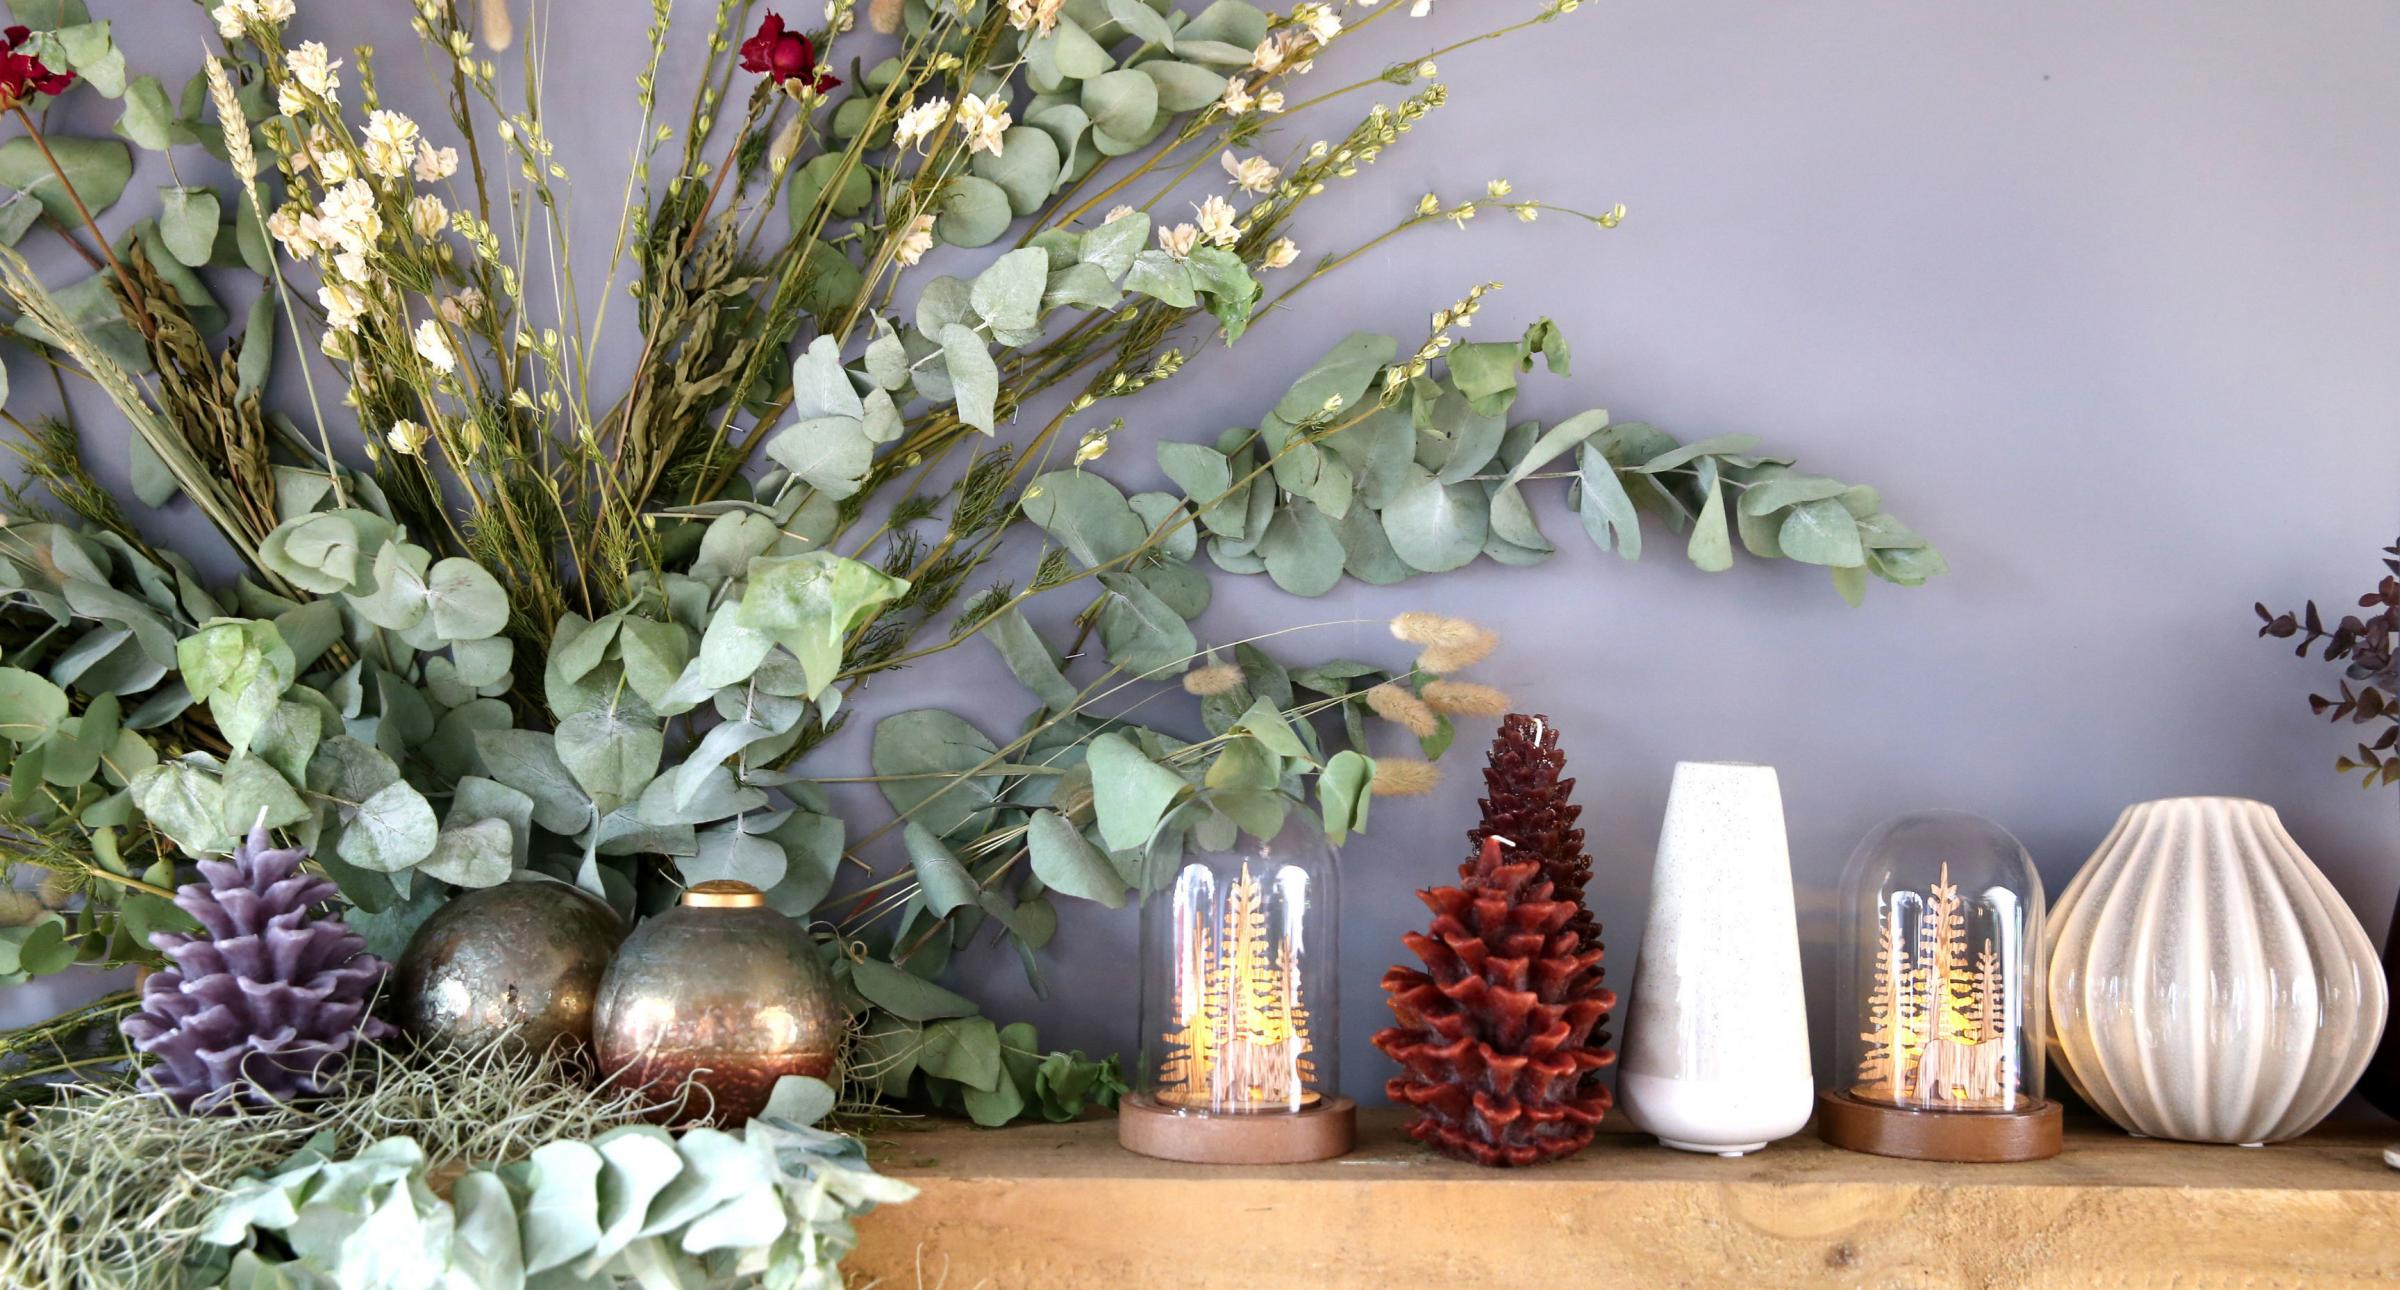 GARDENING: Make your mantelpiece magnificent this Christmas